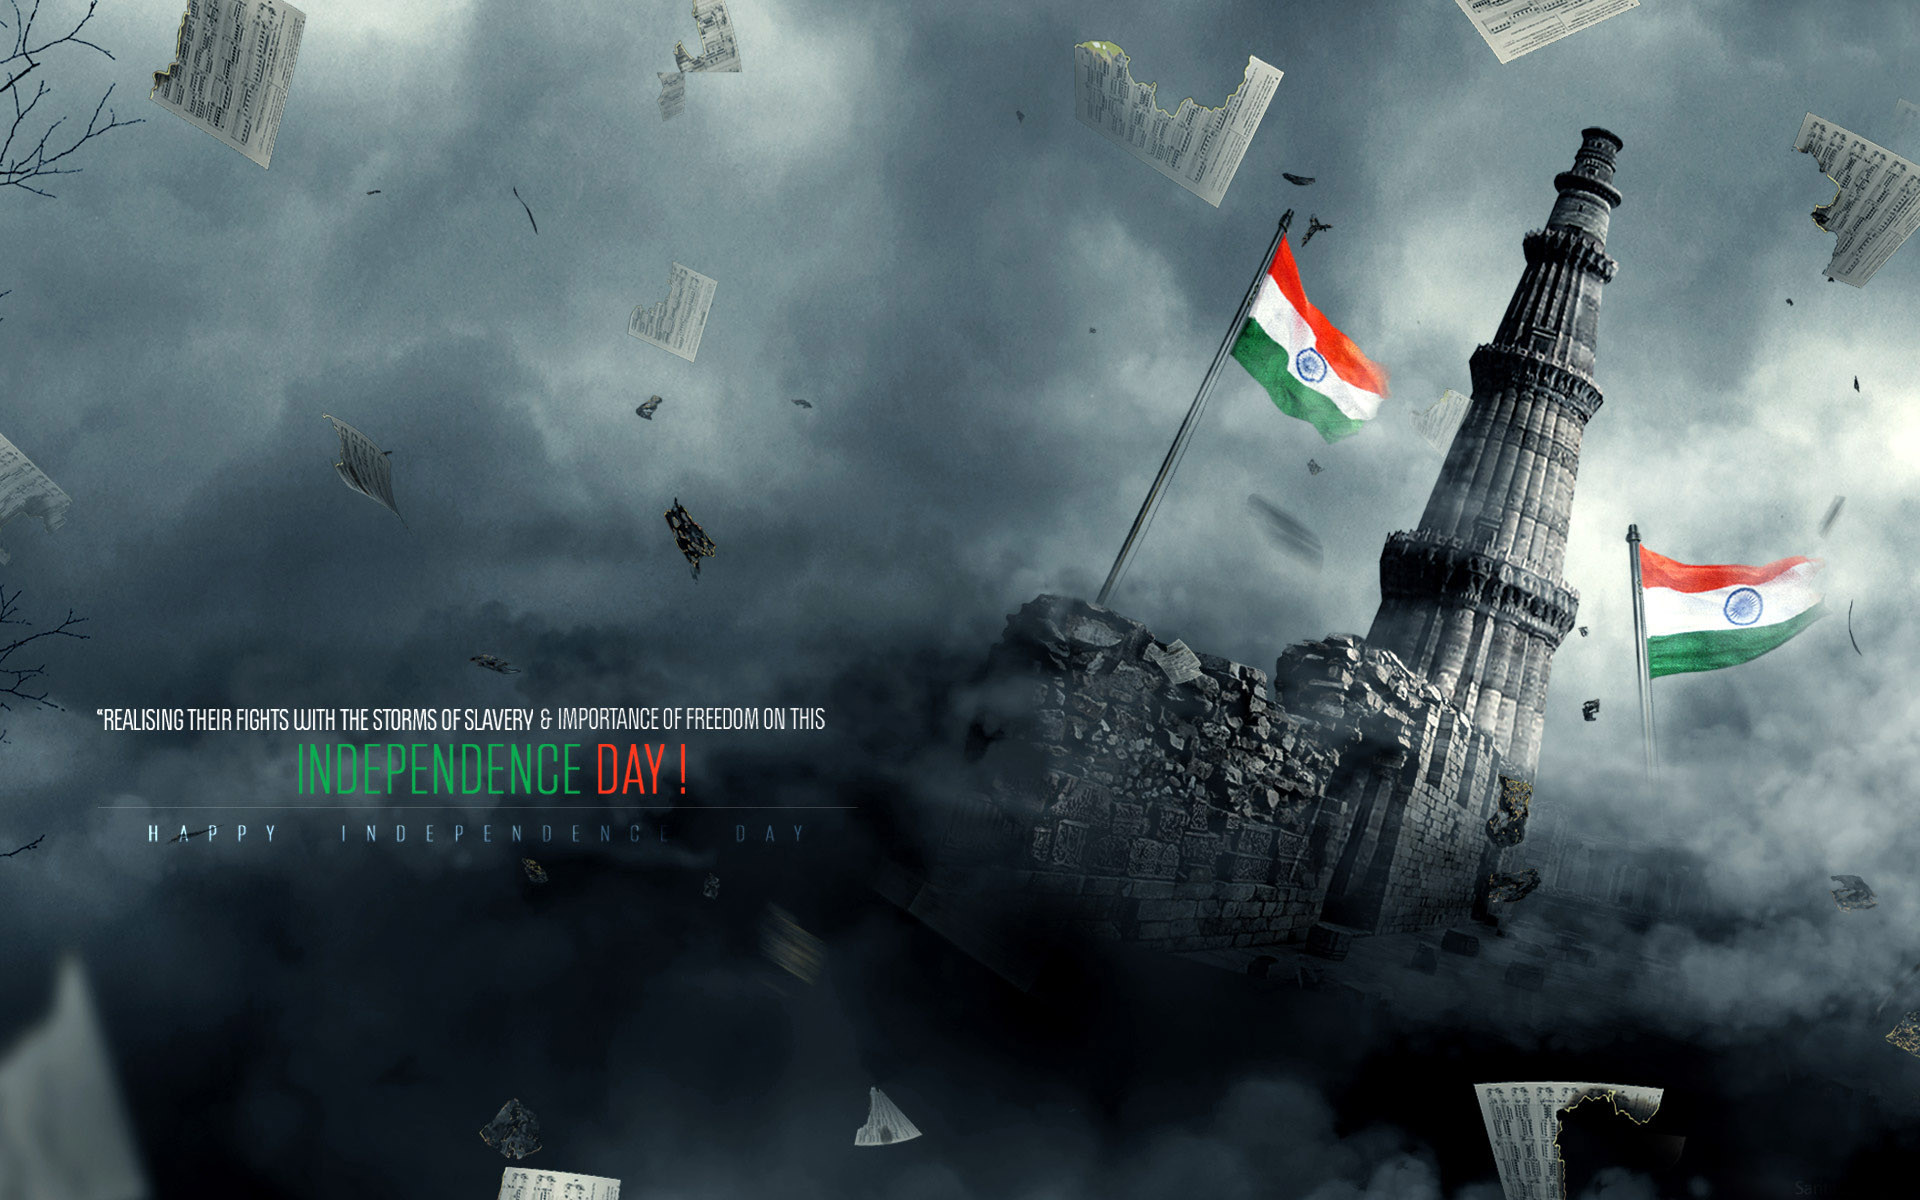 independence day wallpaper hd 2018 74 images